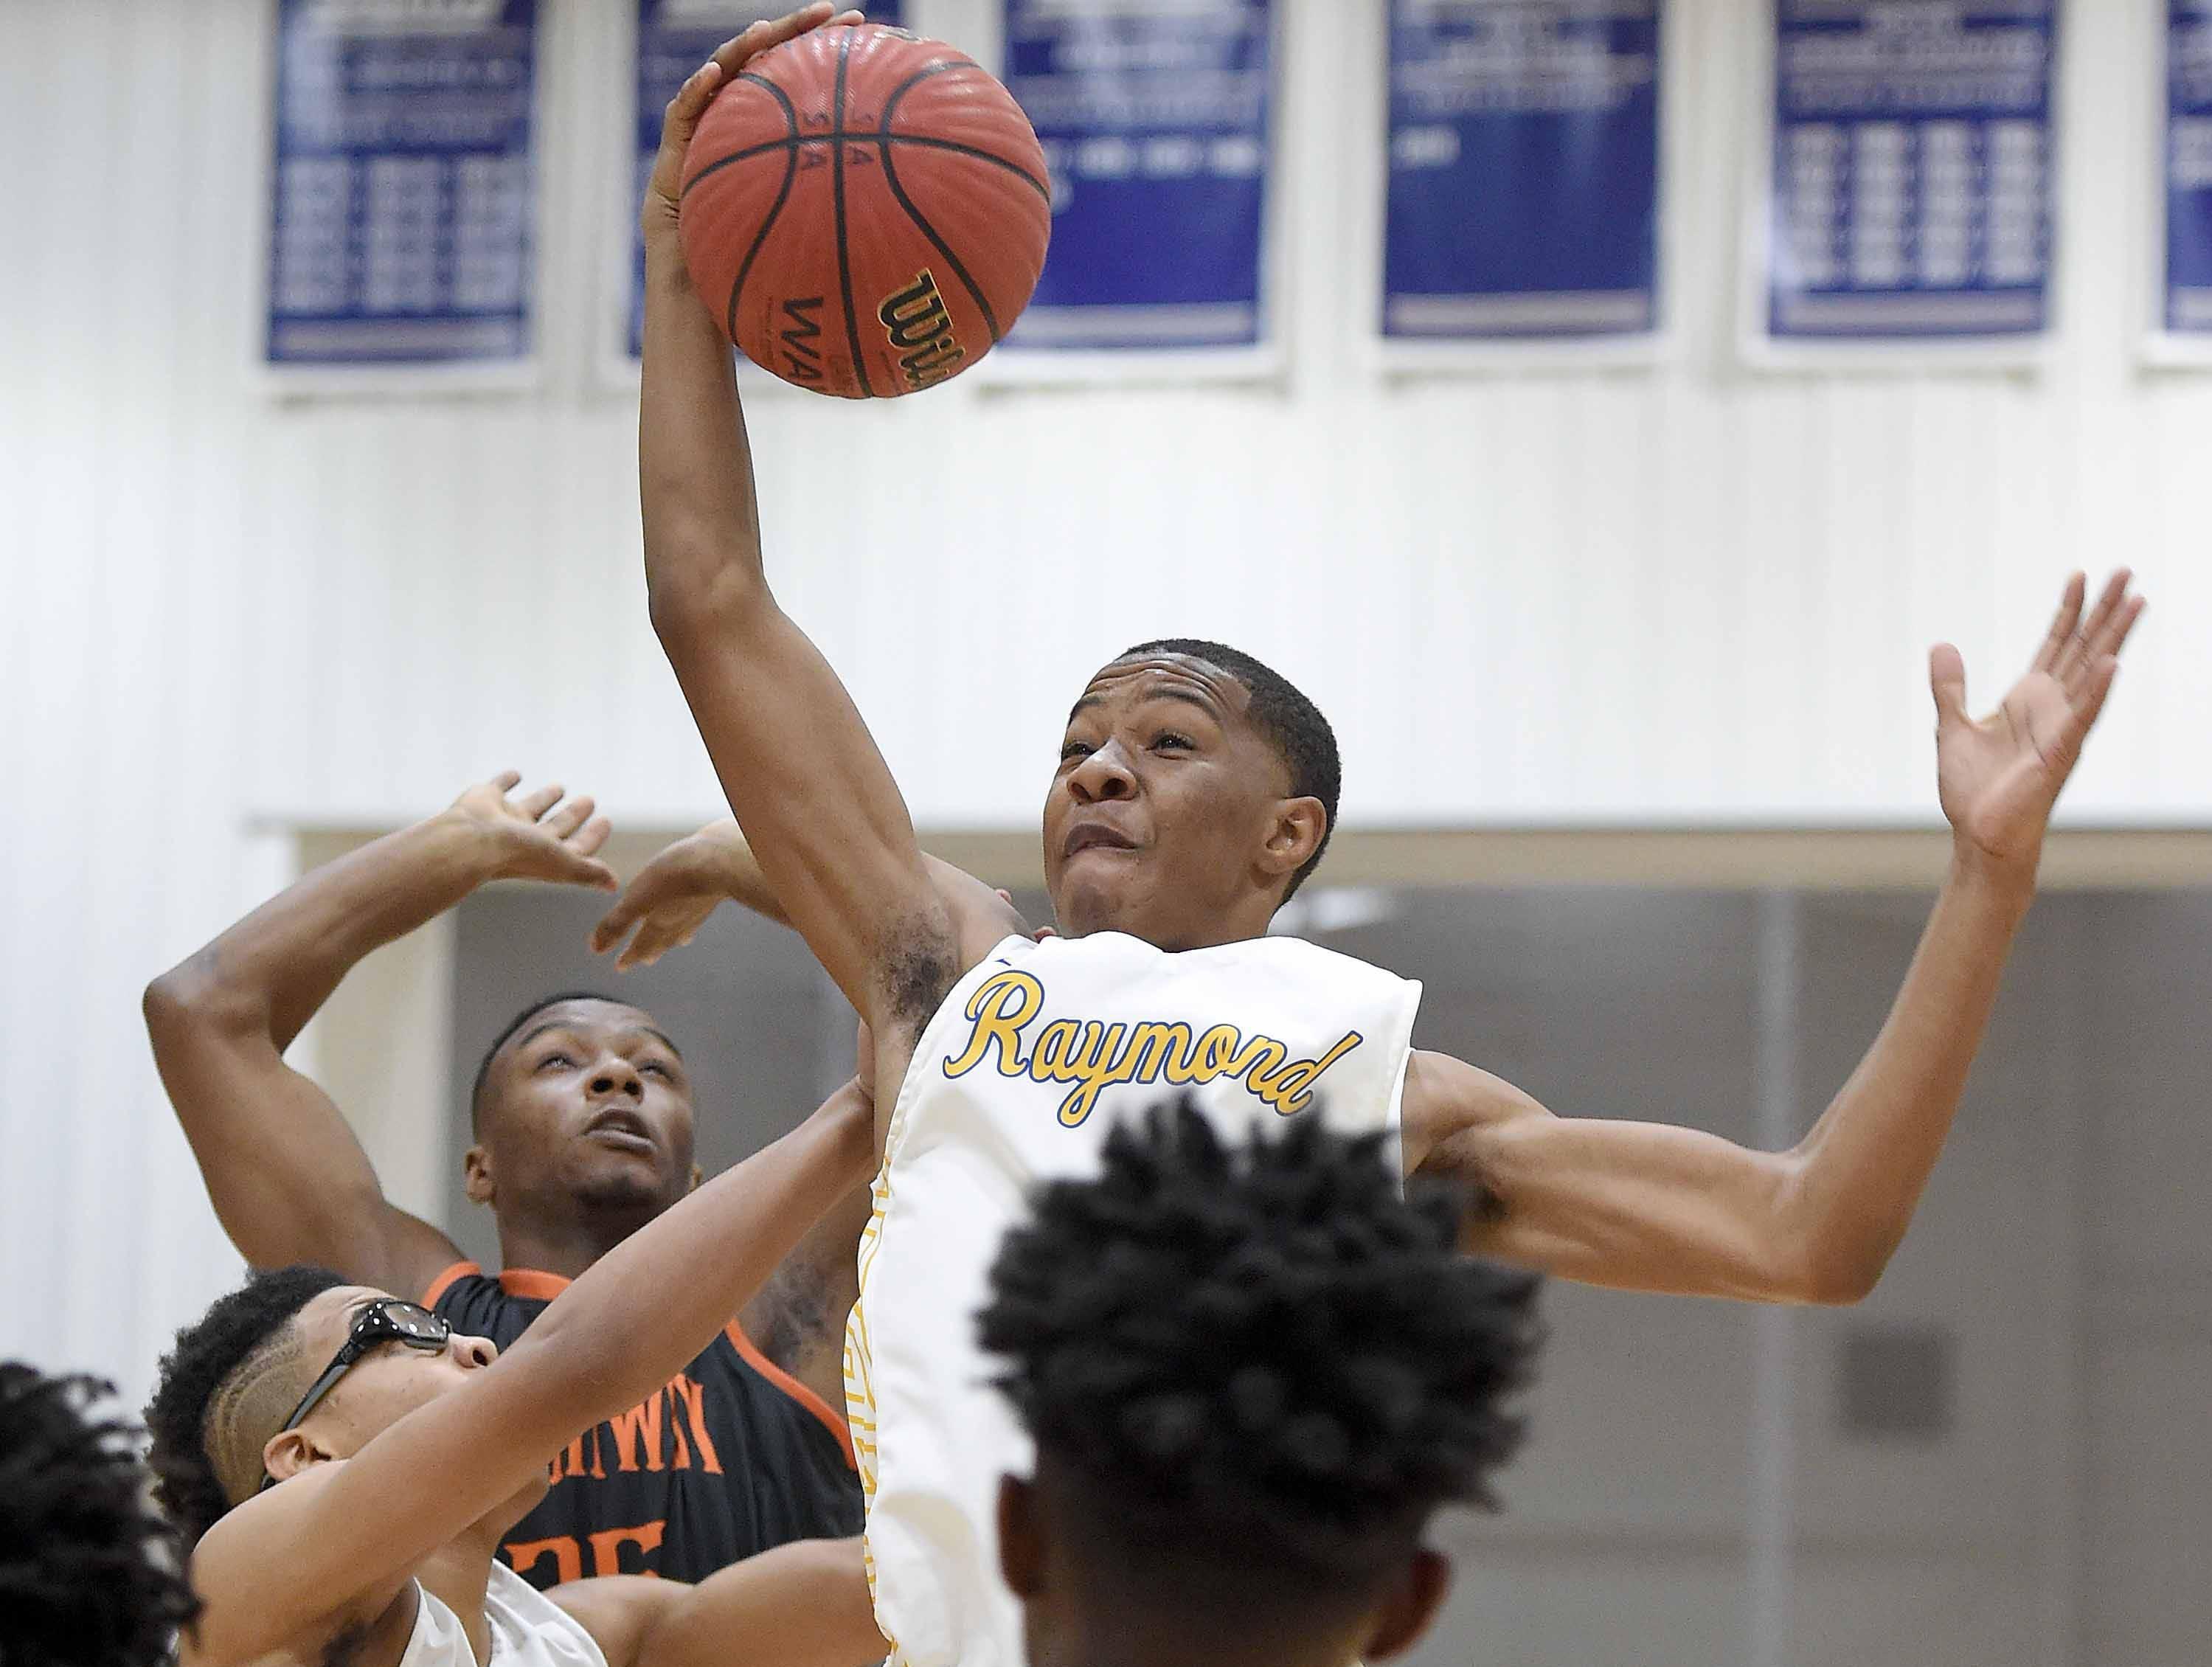 Raymond's Jordan Marshall (4) drives the lane against Callaway on Monday, January 21, 2019, at the Rumble in the South high school basketball tournament at St. Andrew's Episcopal School in Ridgeland, Miss.